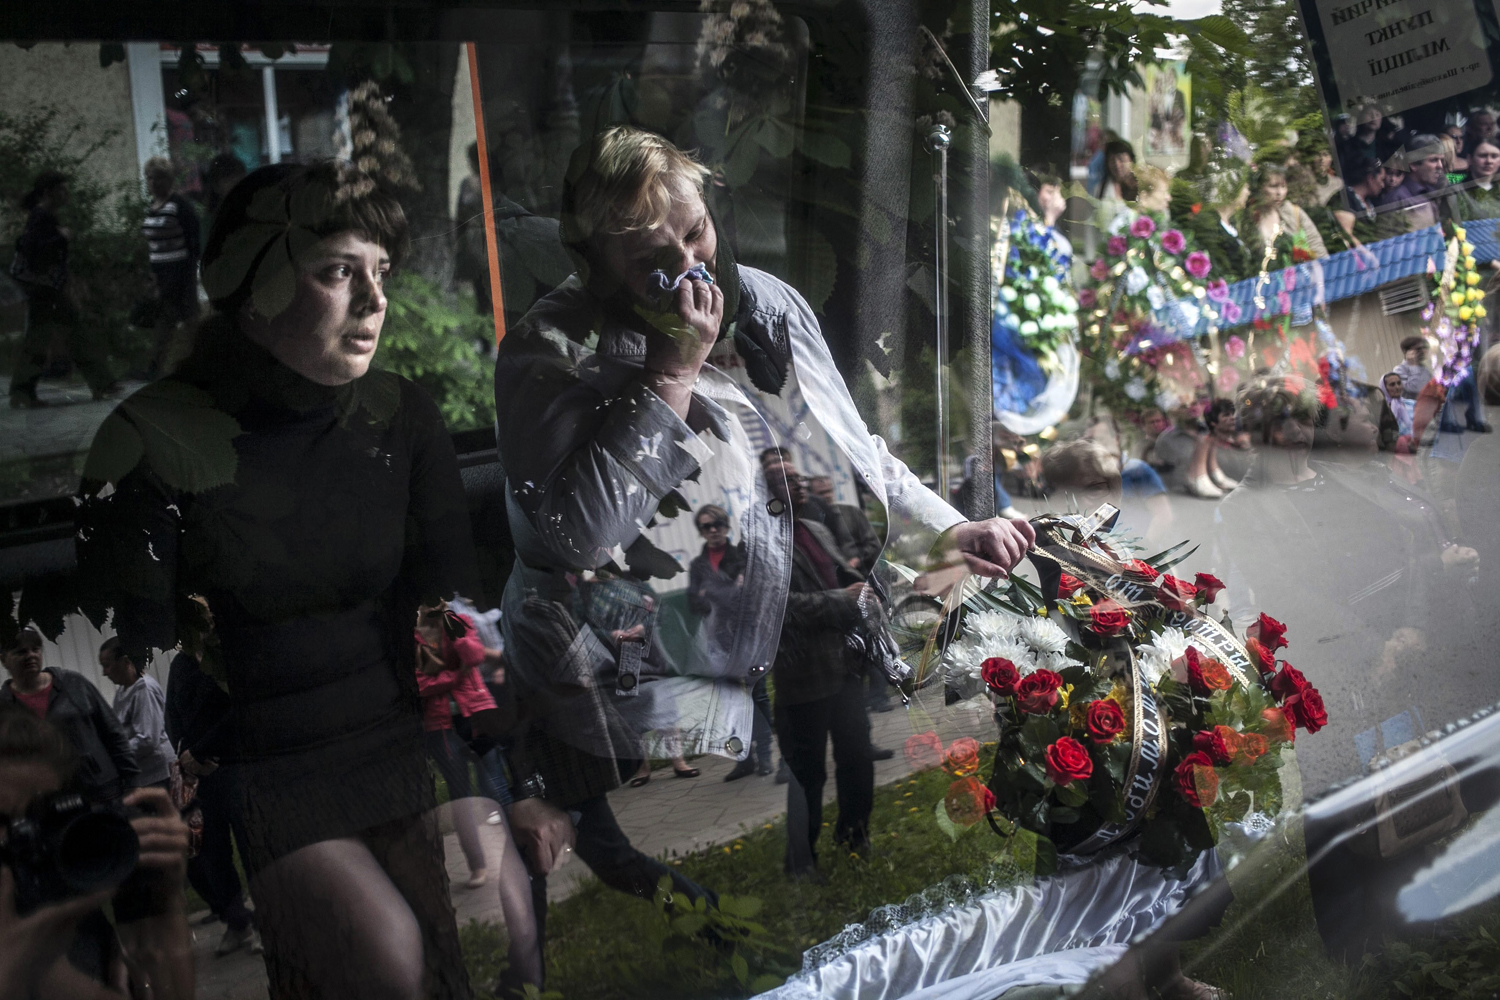 May 13, 2014. The mother (R) and wife (L) of Hyudych Vadim Yurievich cry during his funeral in the eastern Ukranian town of Krasnoarmisk,  Yurievich, a 39-year-old Ukrainian man, was reportedly killed in an incident involving Ukranian militia and pro-Russian supporters on May 11, during referendum voting.